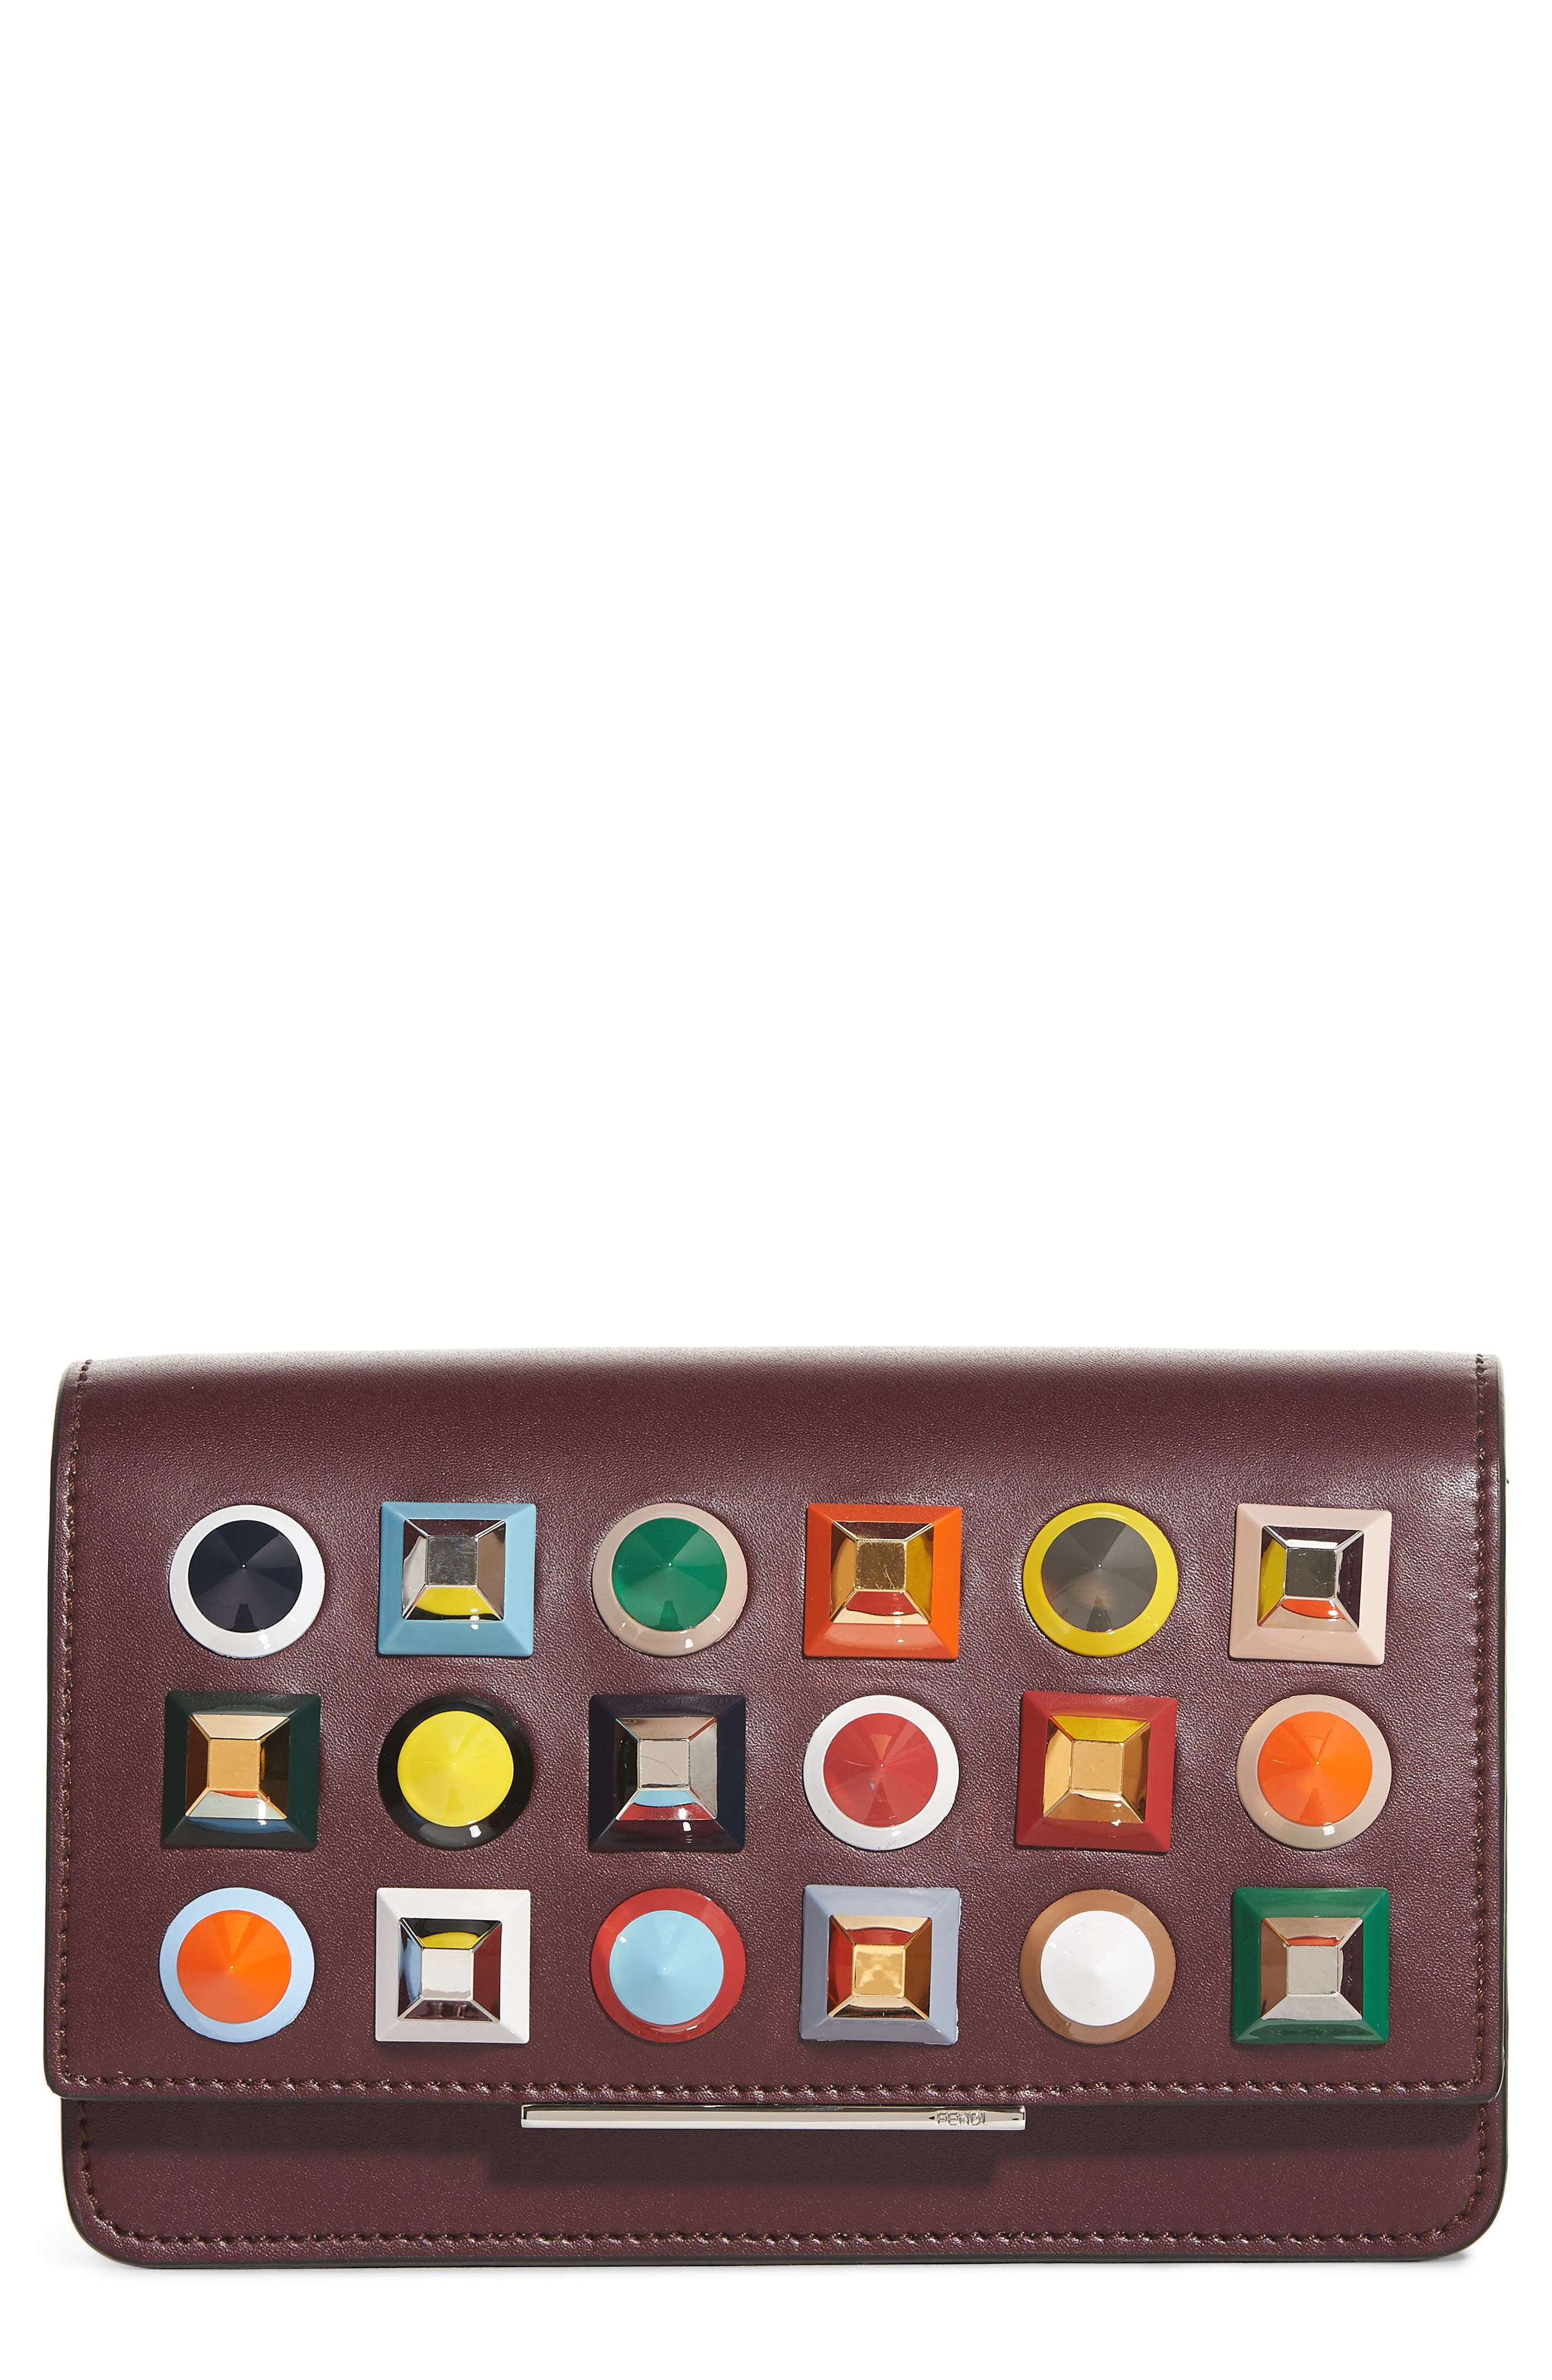 Fendi Rainbow Studded Leather Tube Wallet on a Chain